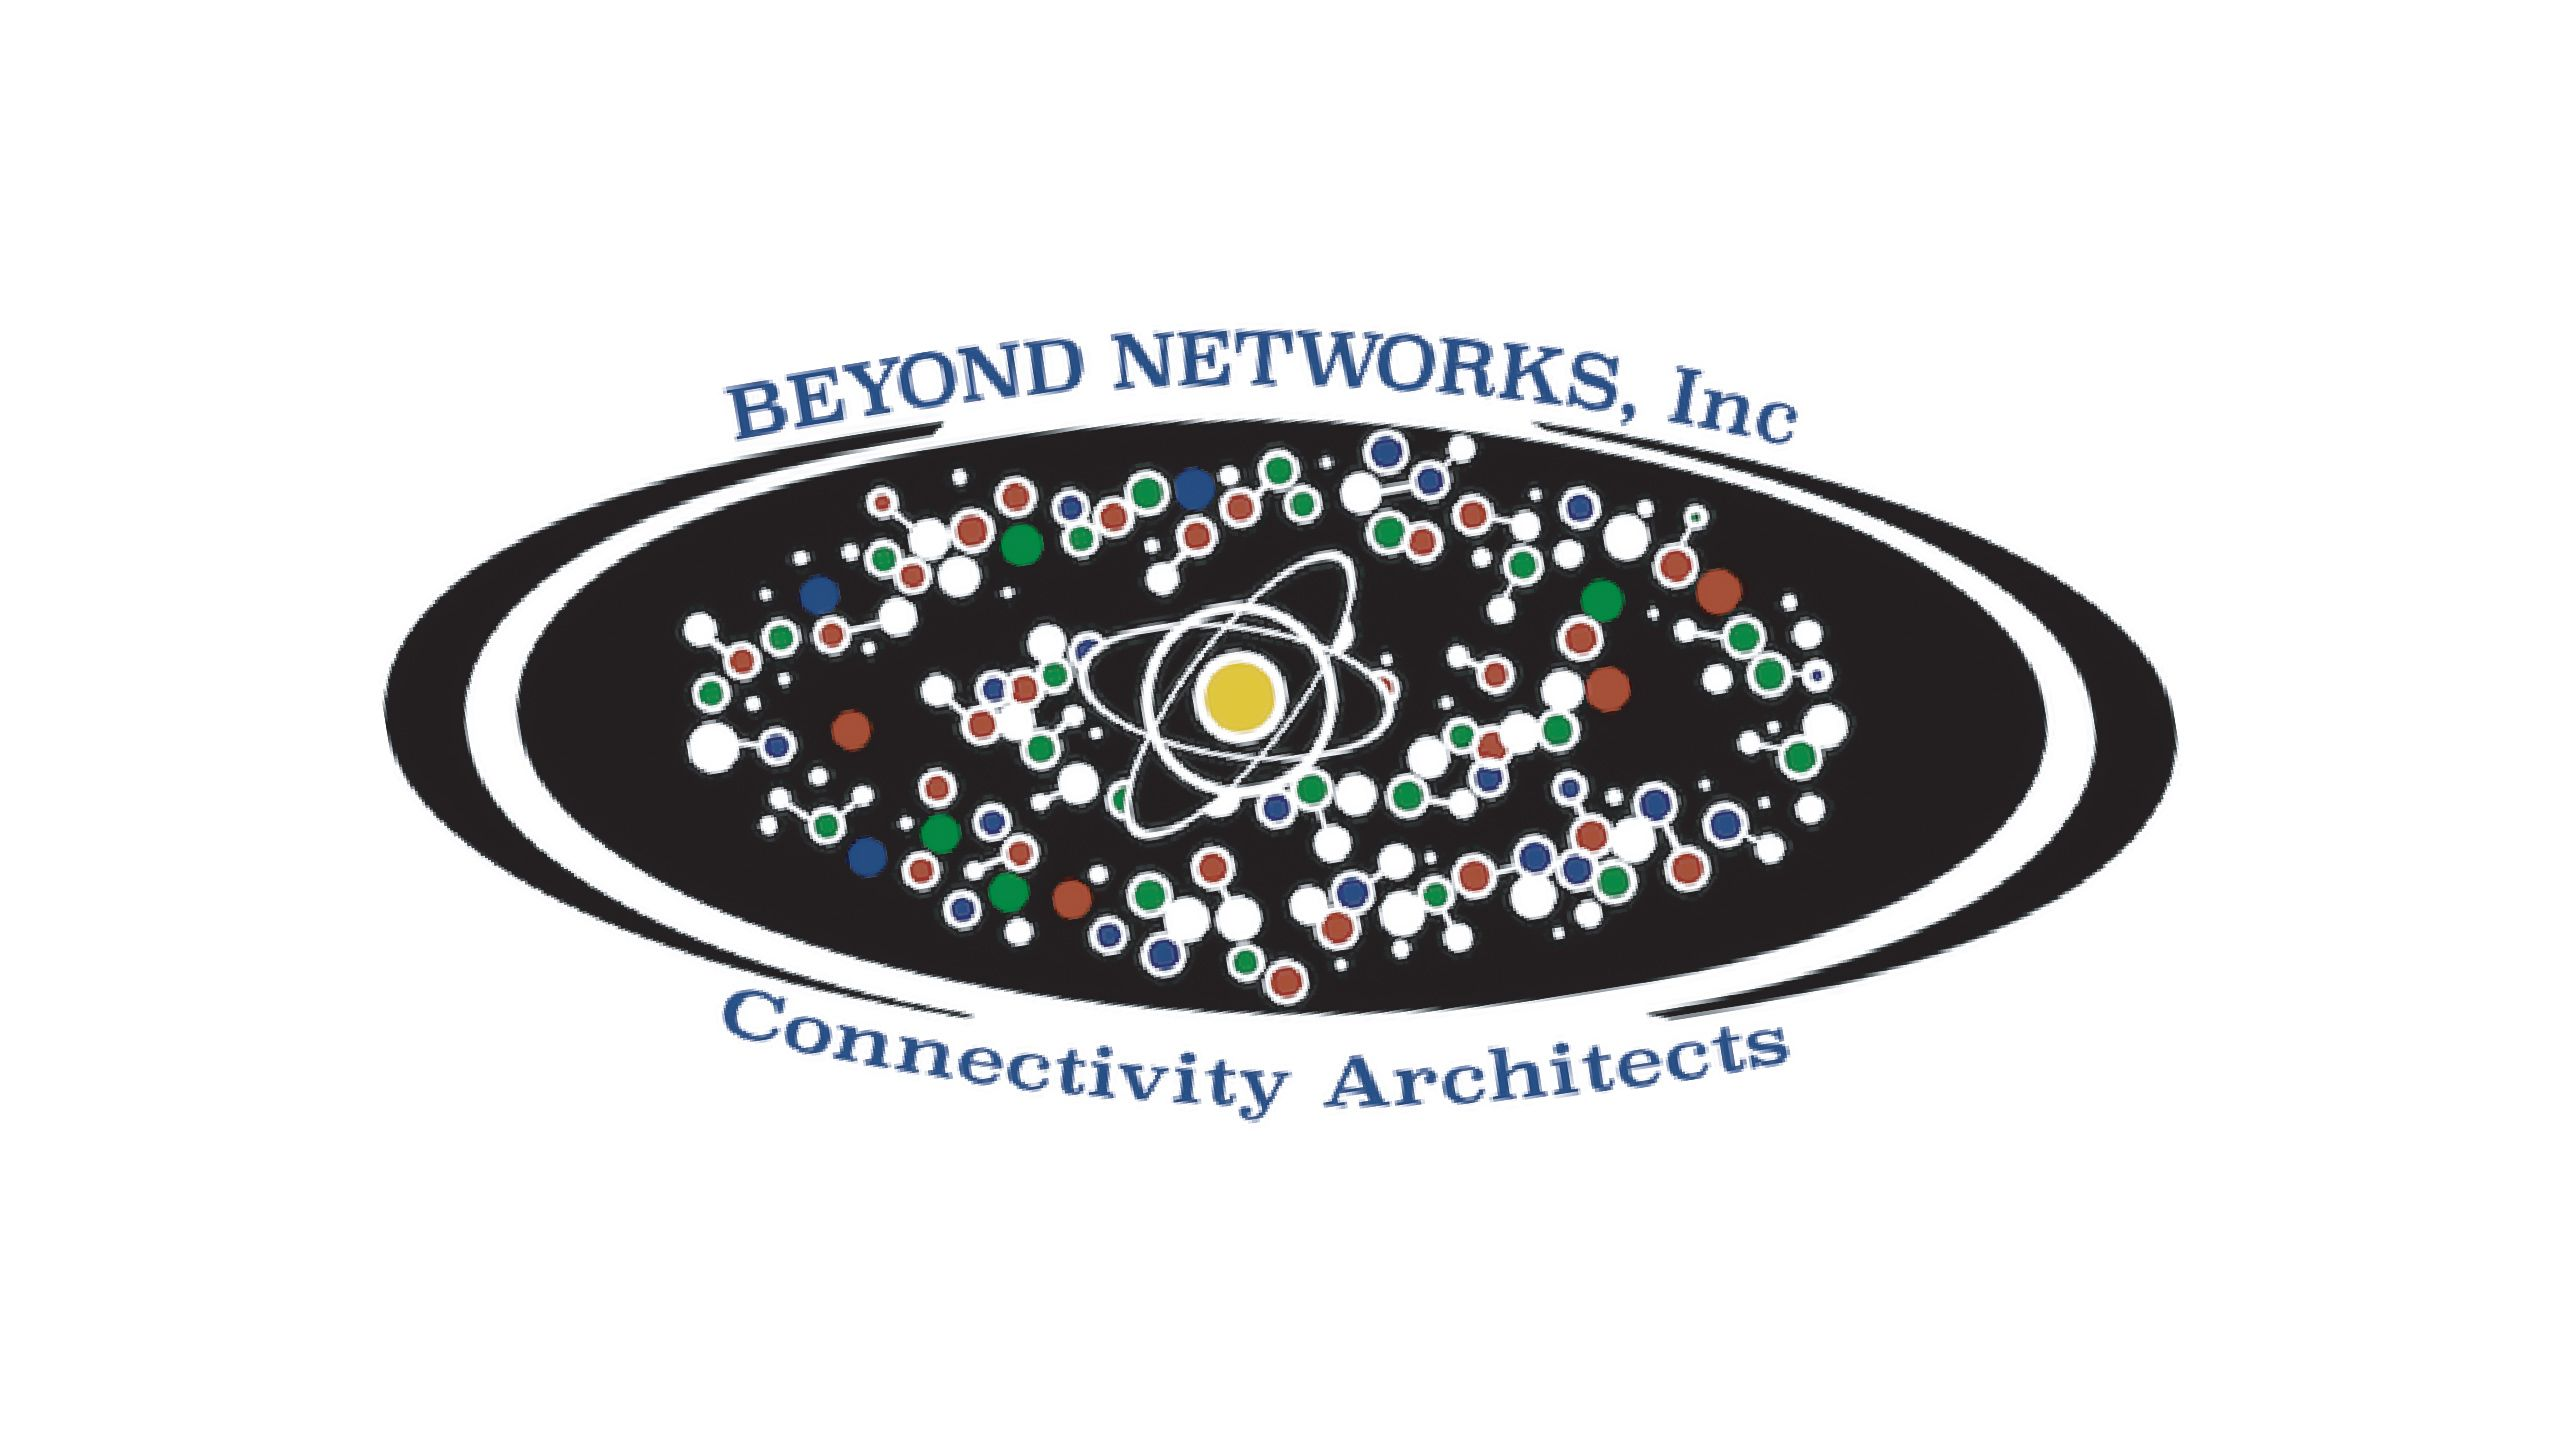 Beyond Networks, Inc.